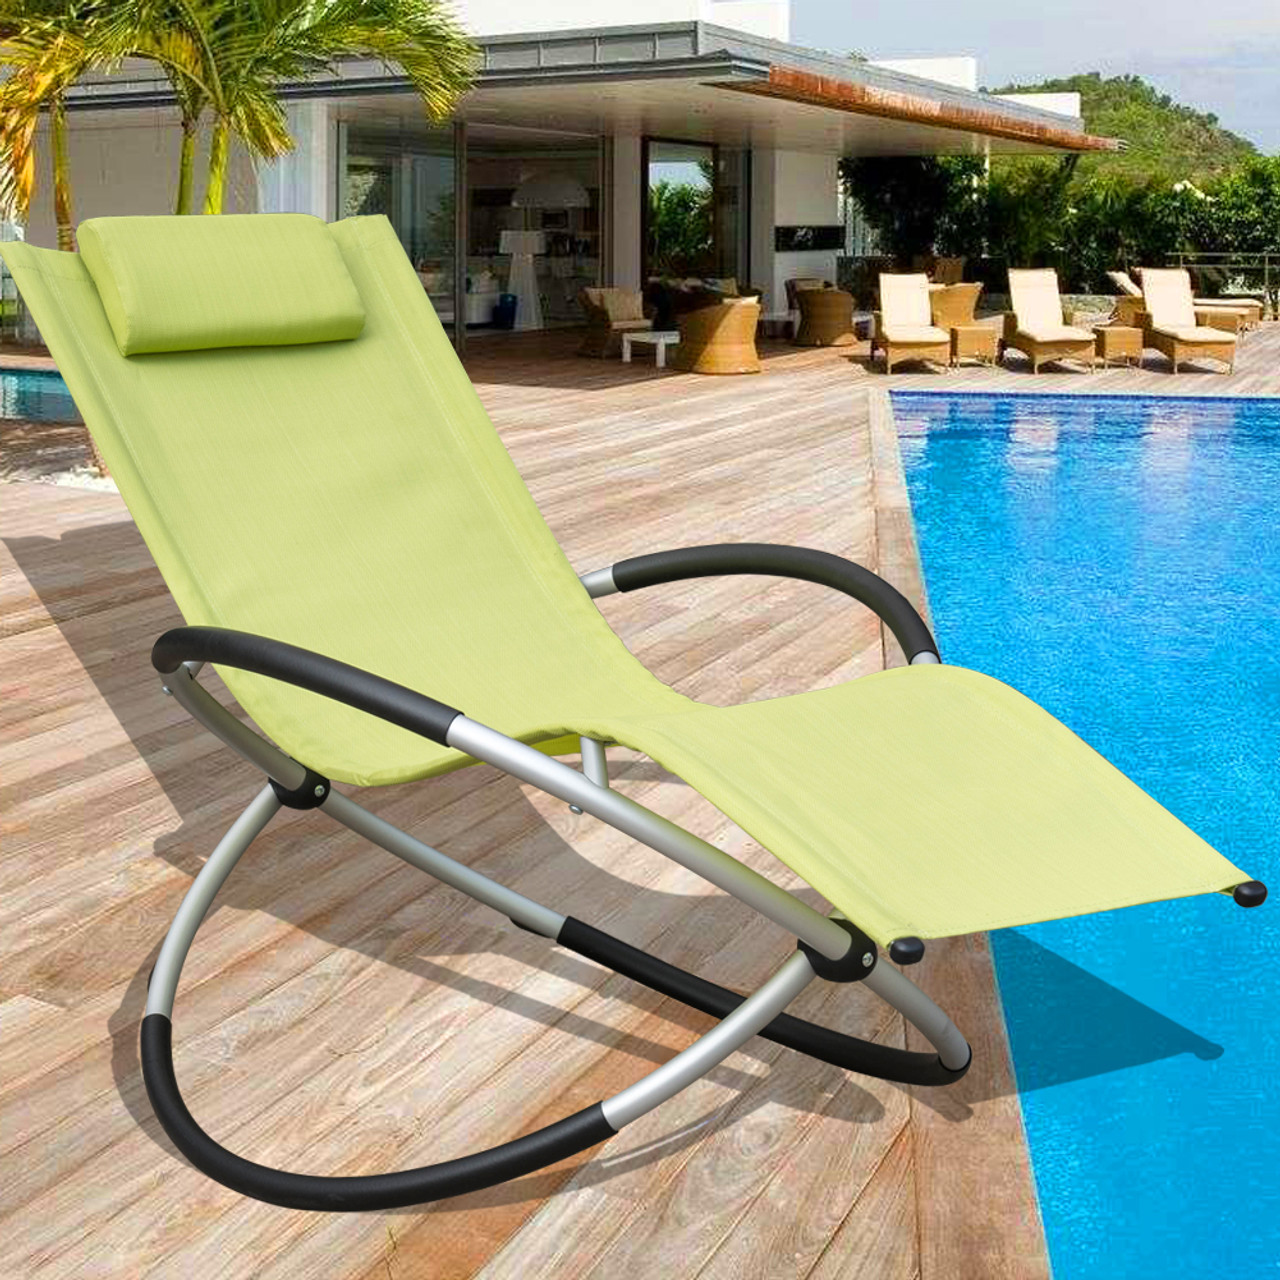 Zero Gravity Folding Rocking Patio Lounge Chair with Pillow